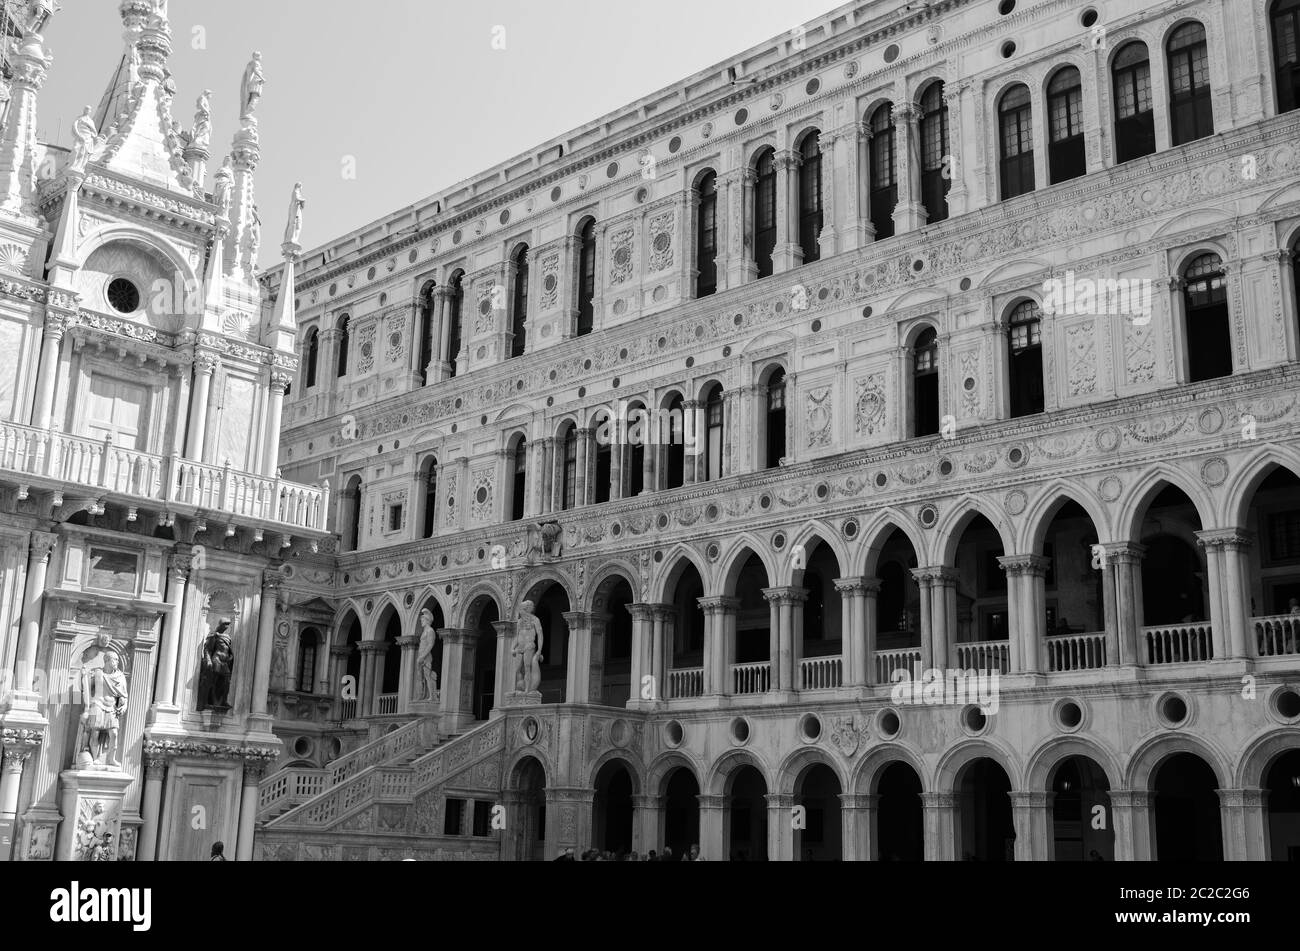 Black and white ornamental structure located near arched walls in courtyard of medieval Doge Palace in Venice, Italy Stock Photo